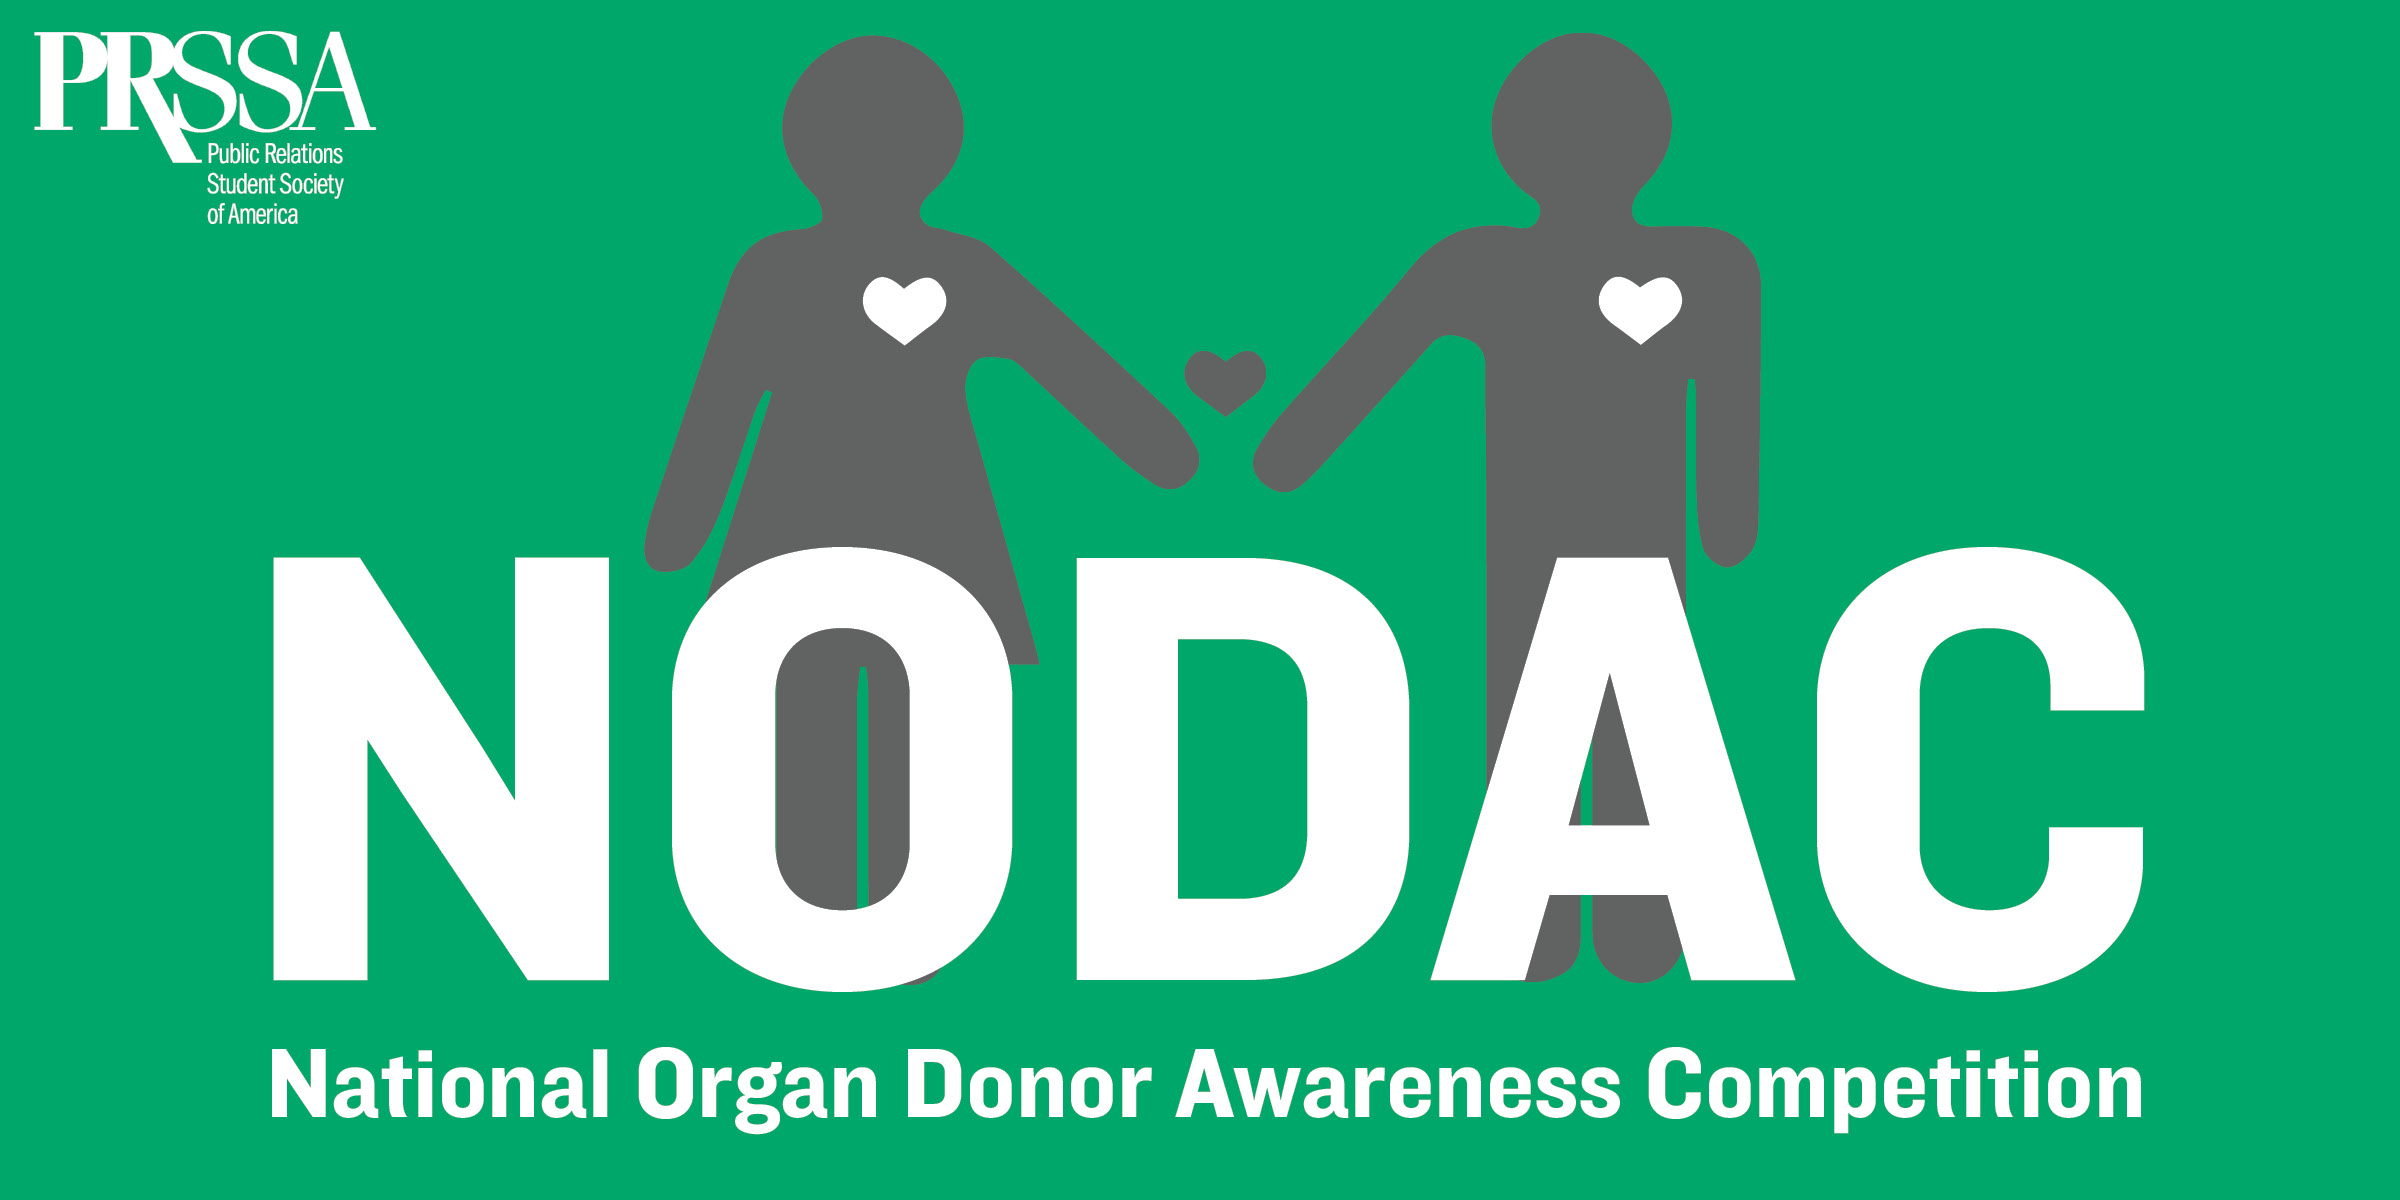 National Organ Donor Awareness Campaign